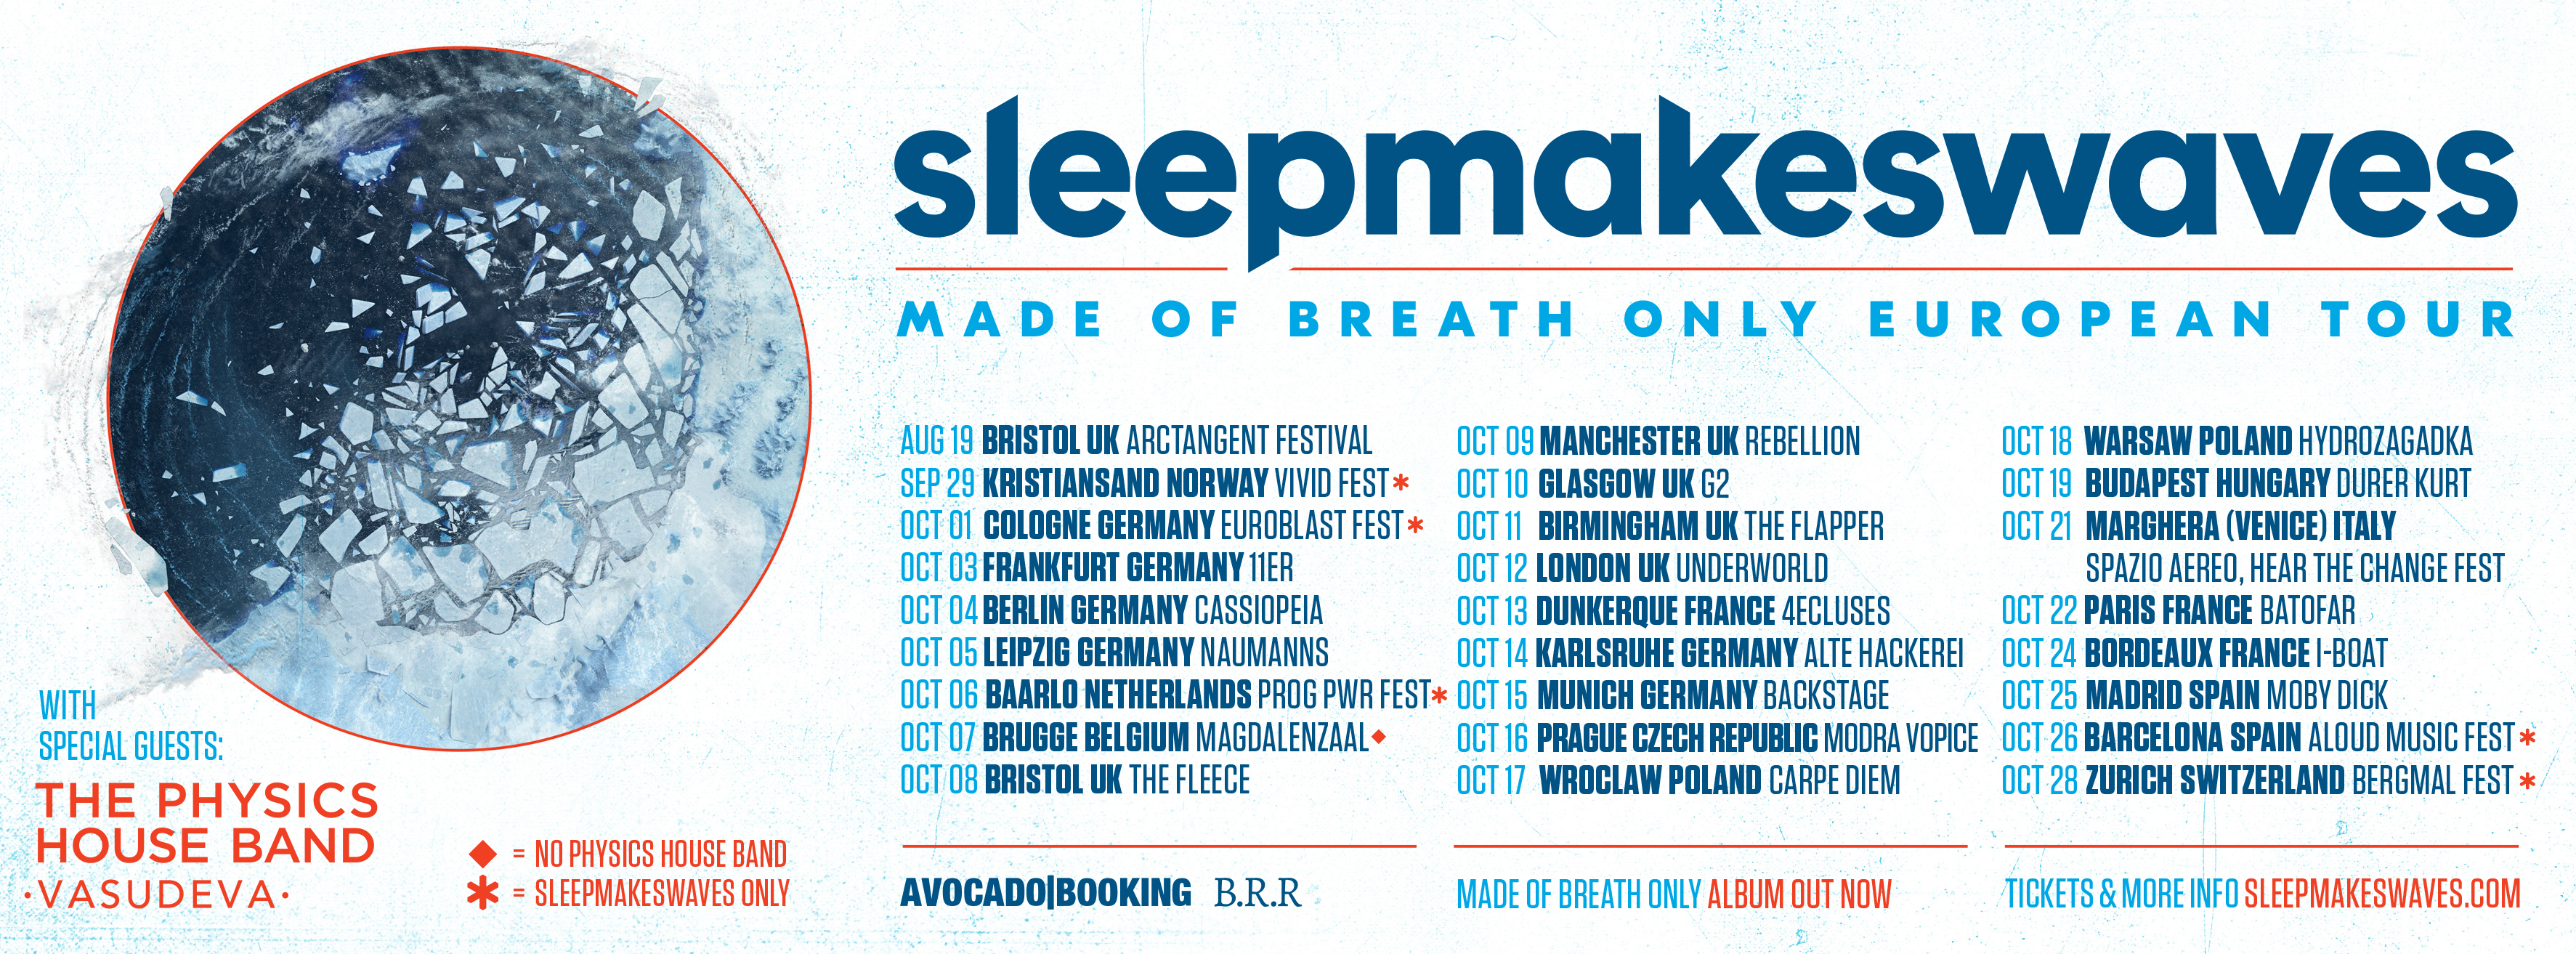 UK & EUROPE 'MADE OF BREATH ONLY' HEADLINE TOUR